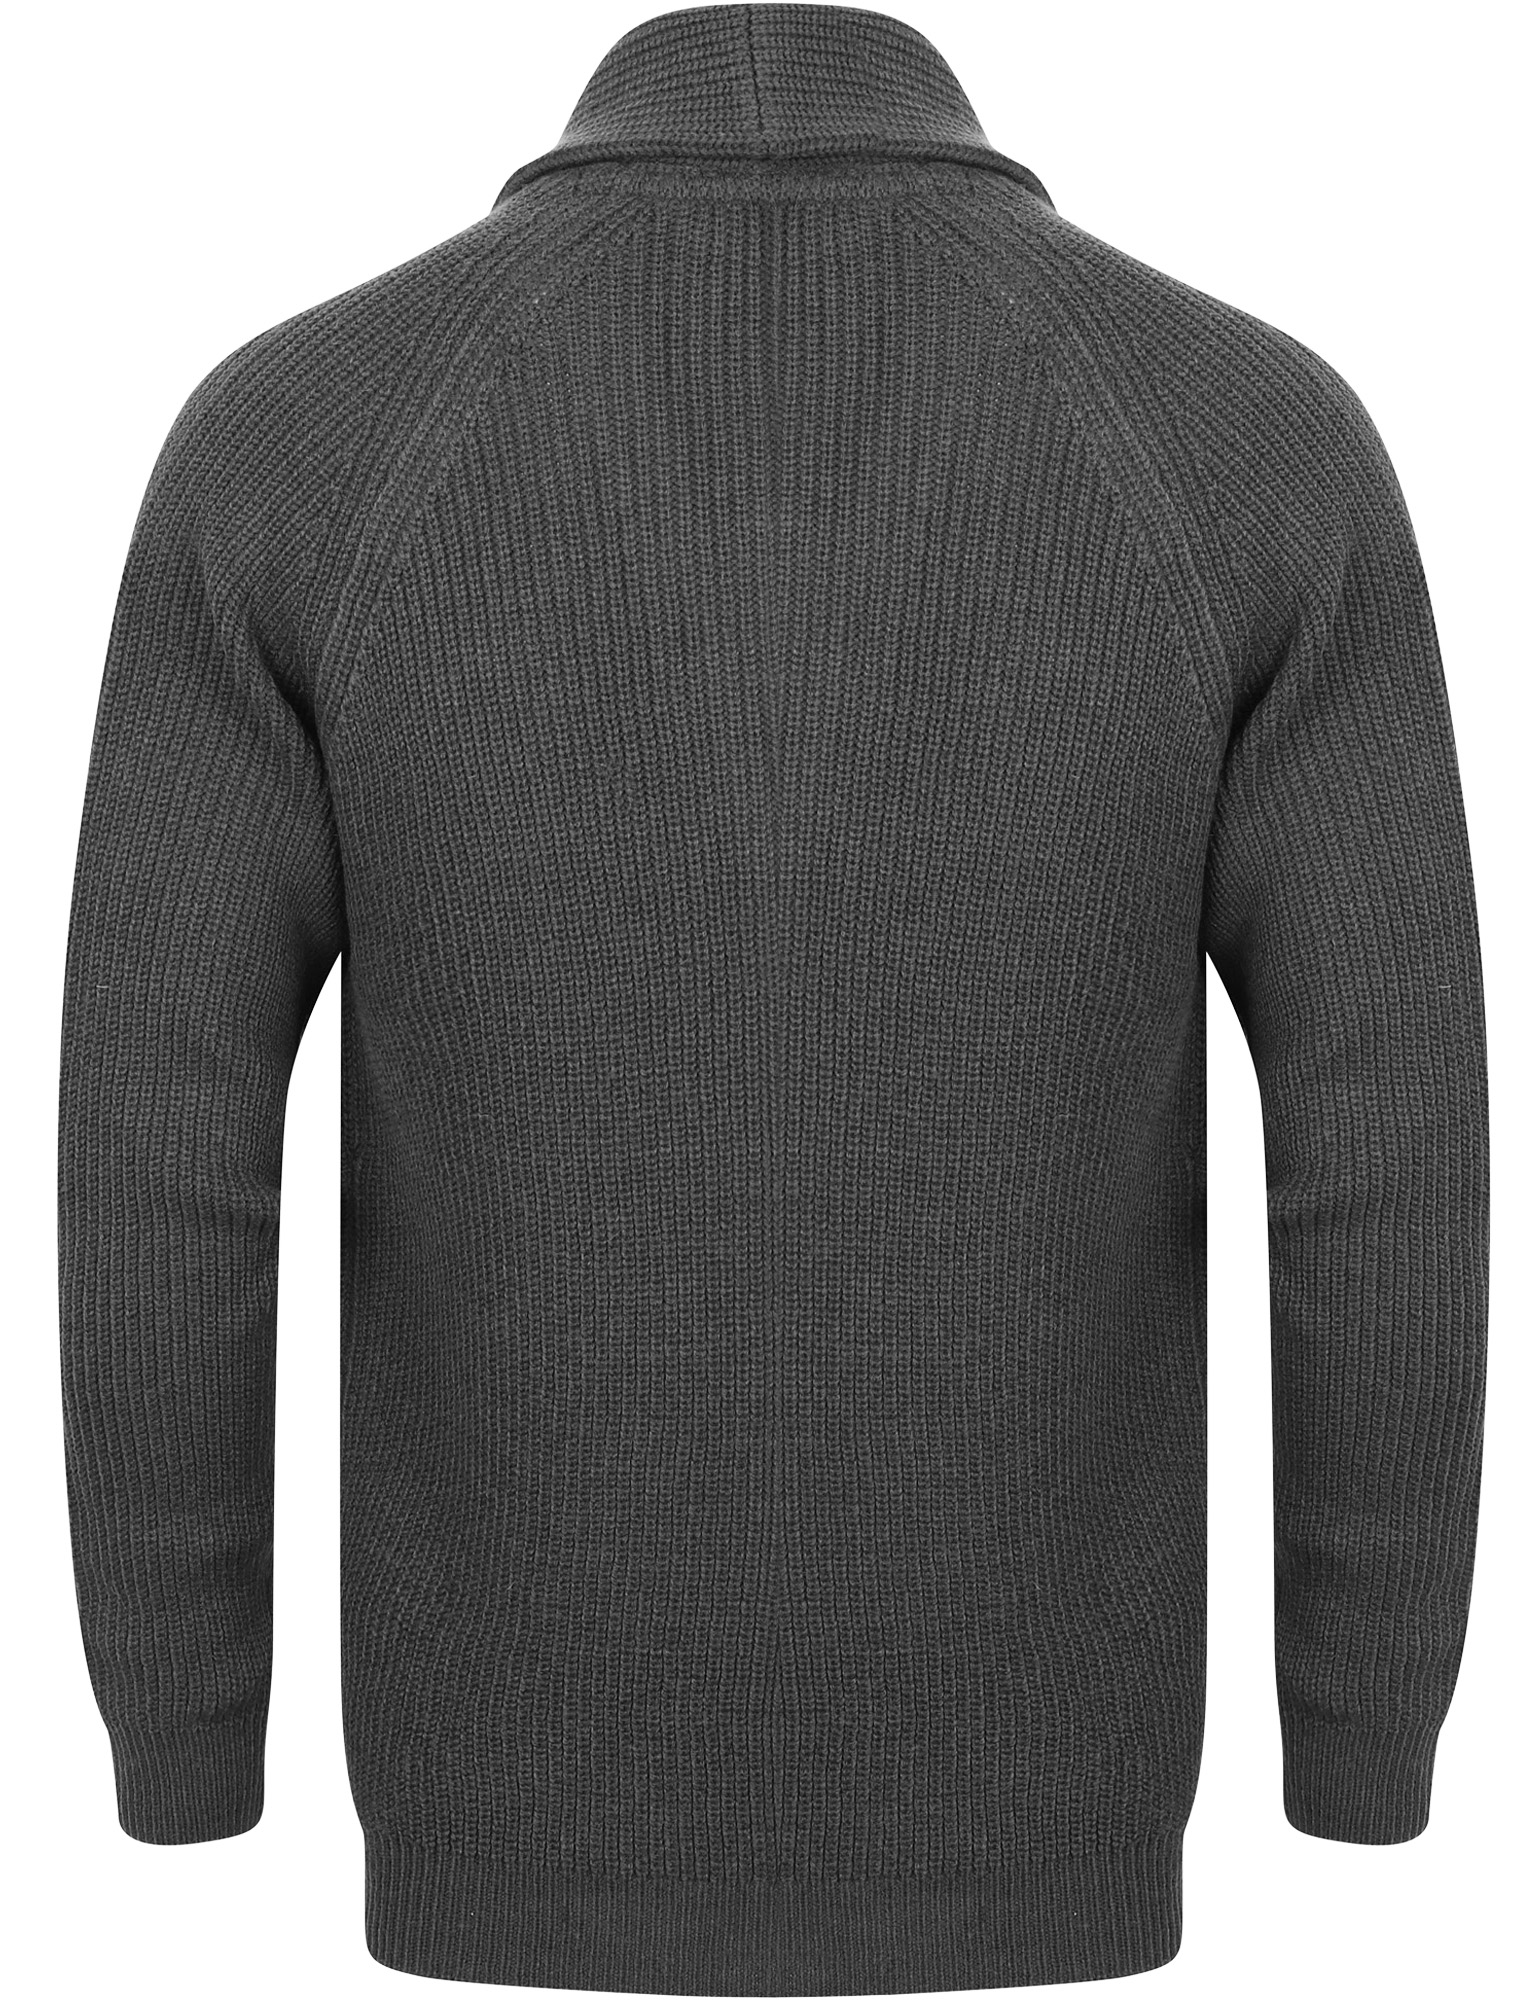 New-Mens-Tokyo-Laundry-Shawl-Neck-Long-Sleeve-Wool-Blend-Cardigans-Size-S-XXL thumbnail 14